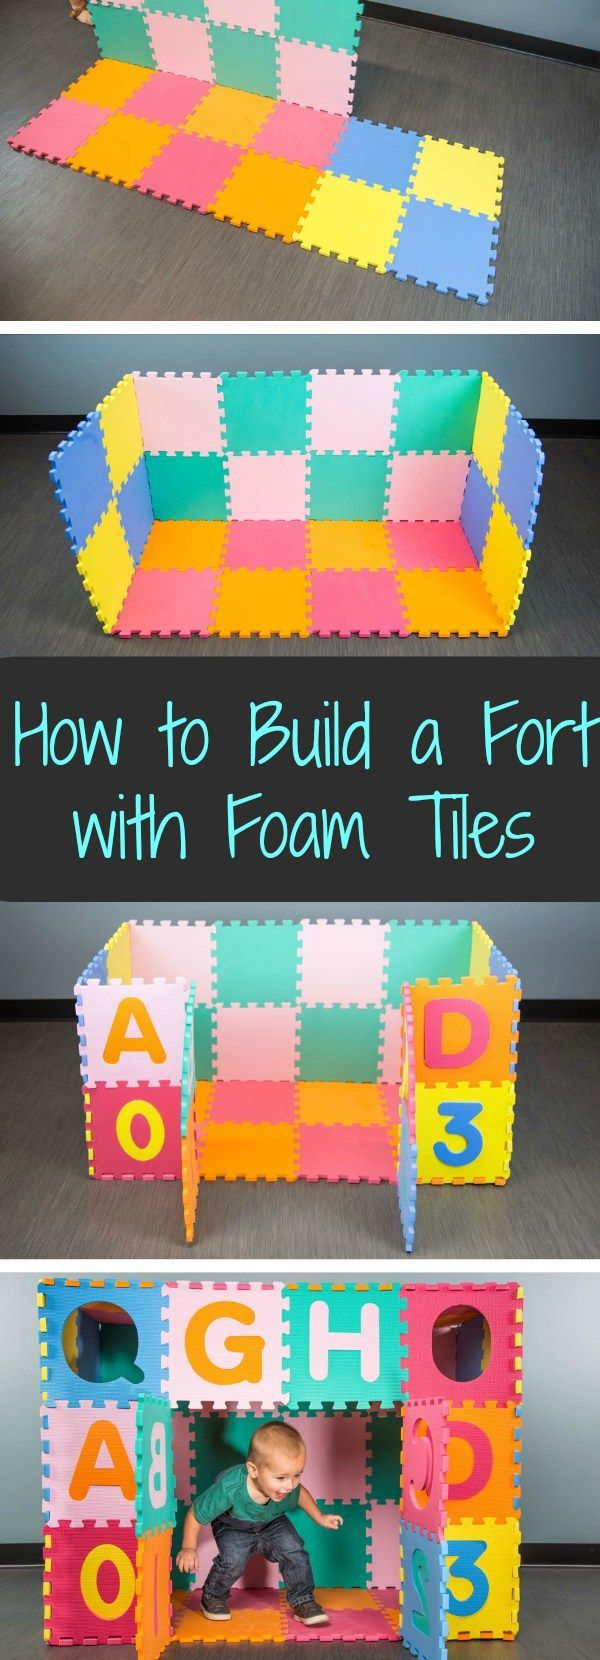 Best 25 foam floor tiles ideas on pinterest foam flooring tent how to build a fort with foam tiles in 6 easy steps take your foam dailygadgetfo Choice Image